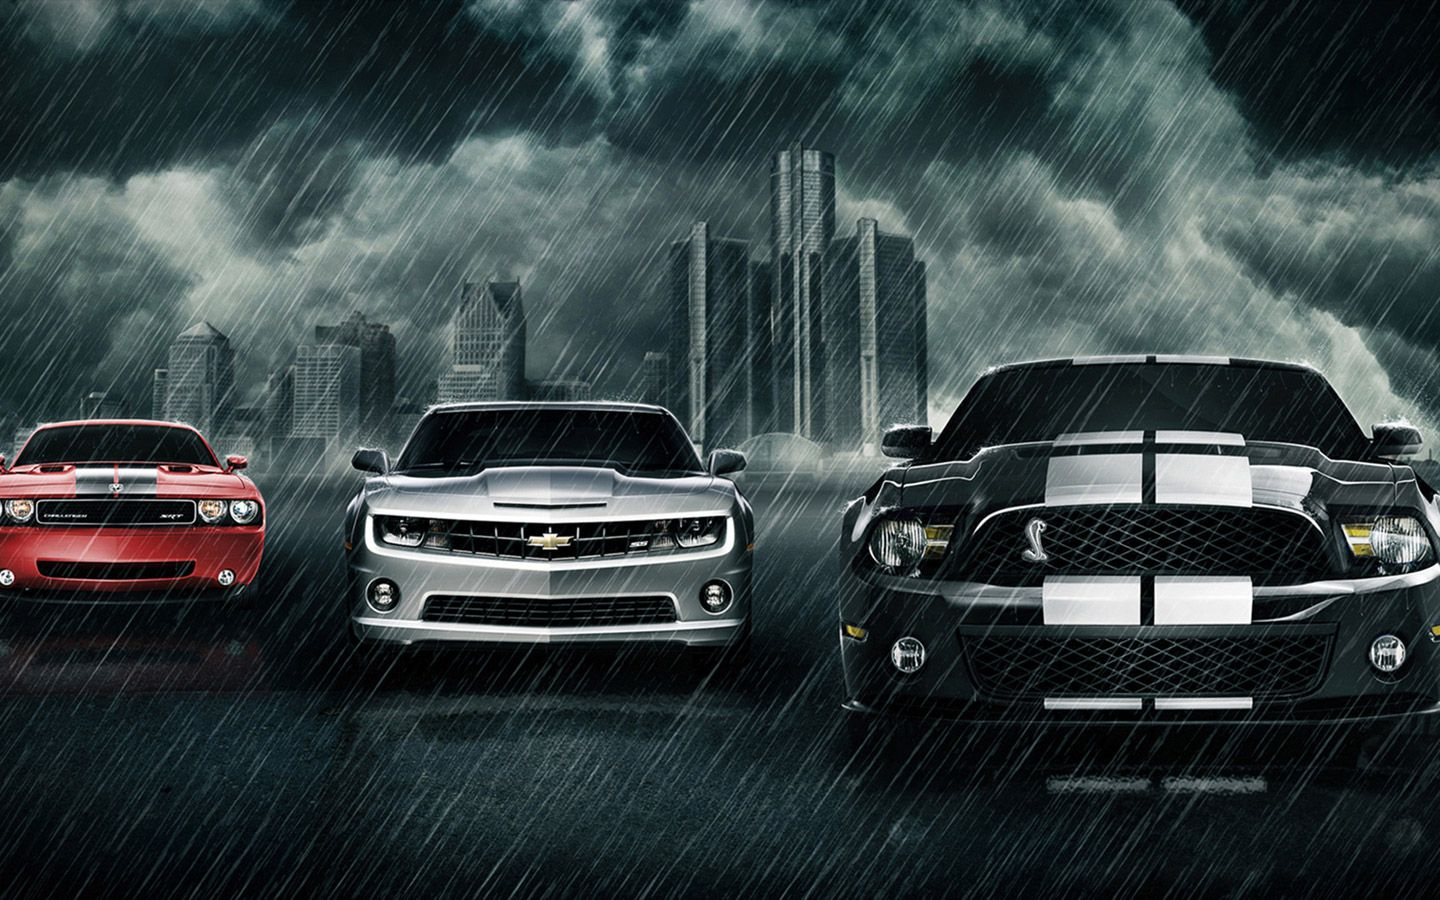 Muscle Cars Mustang Wallpaper Cars Hd Wallpapers Find Best Latest Cars Hd Wallpapers